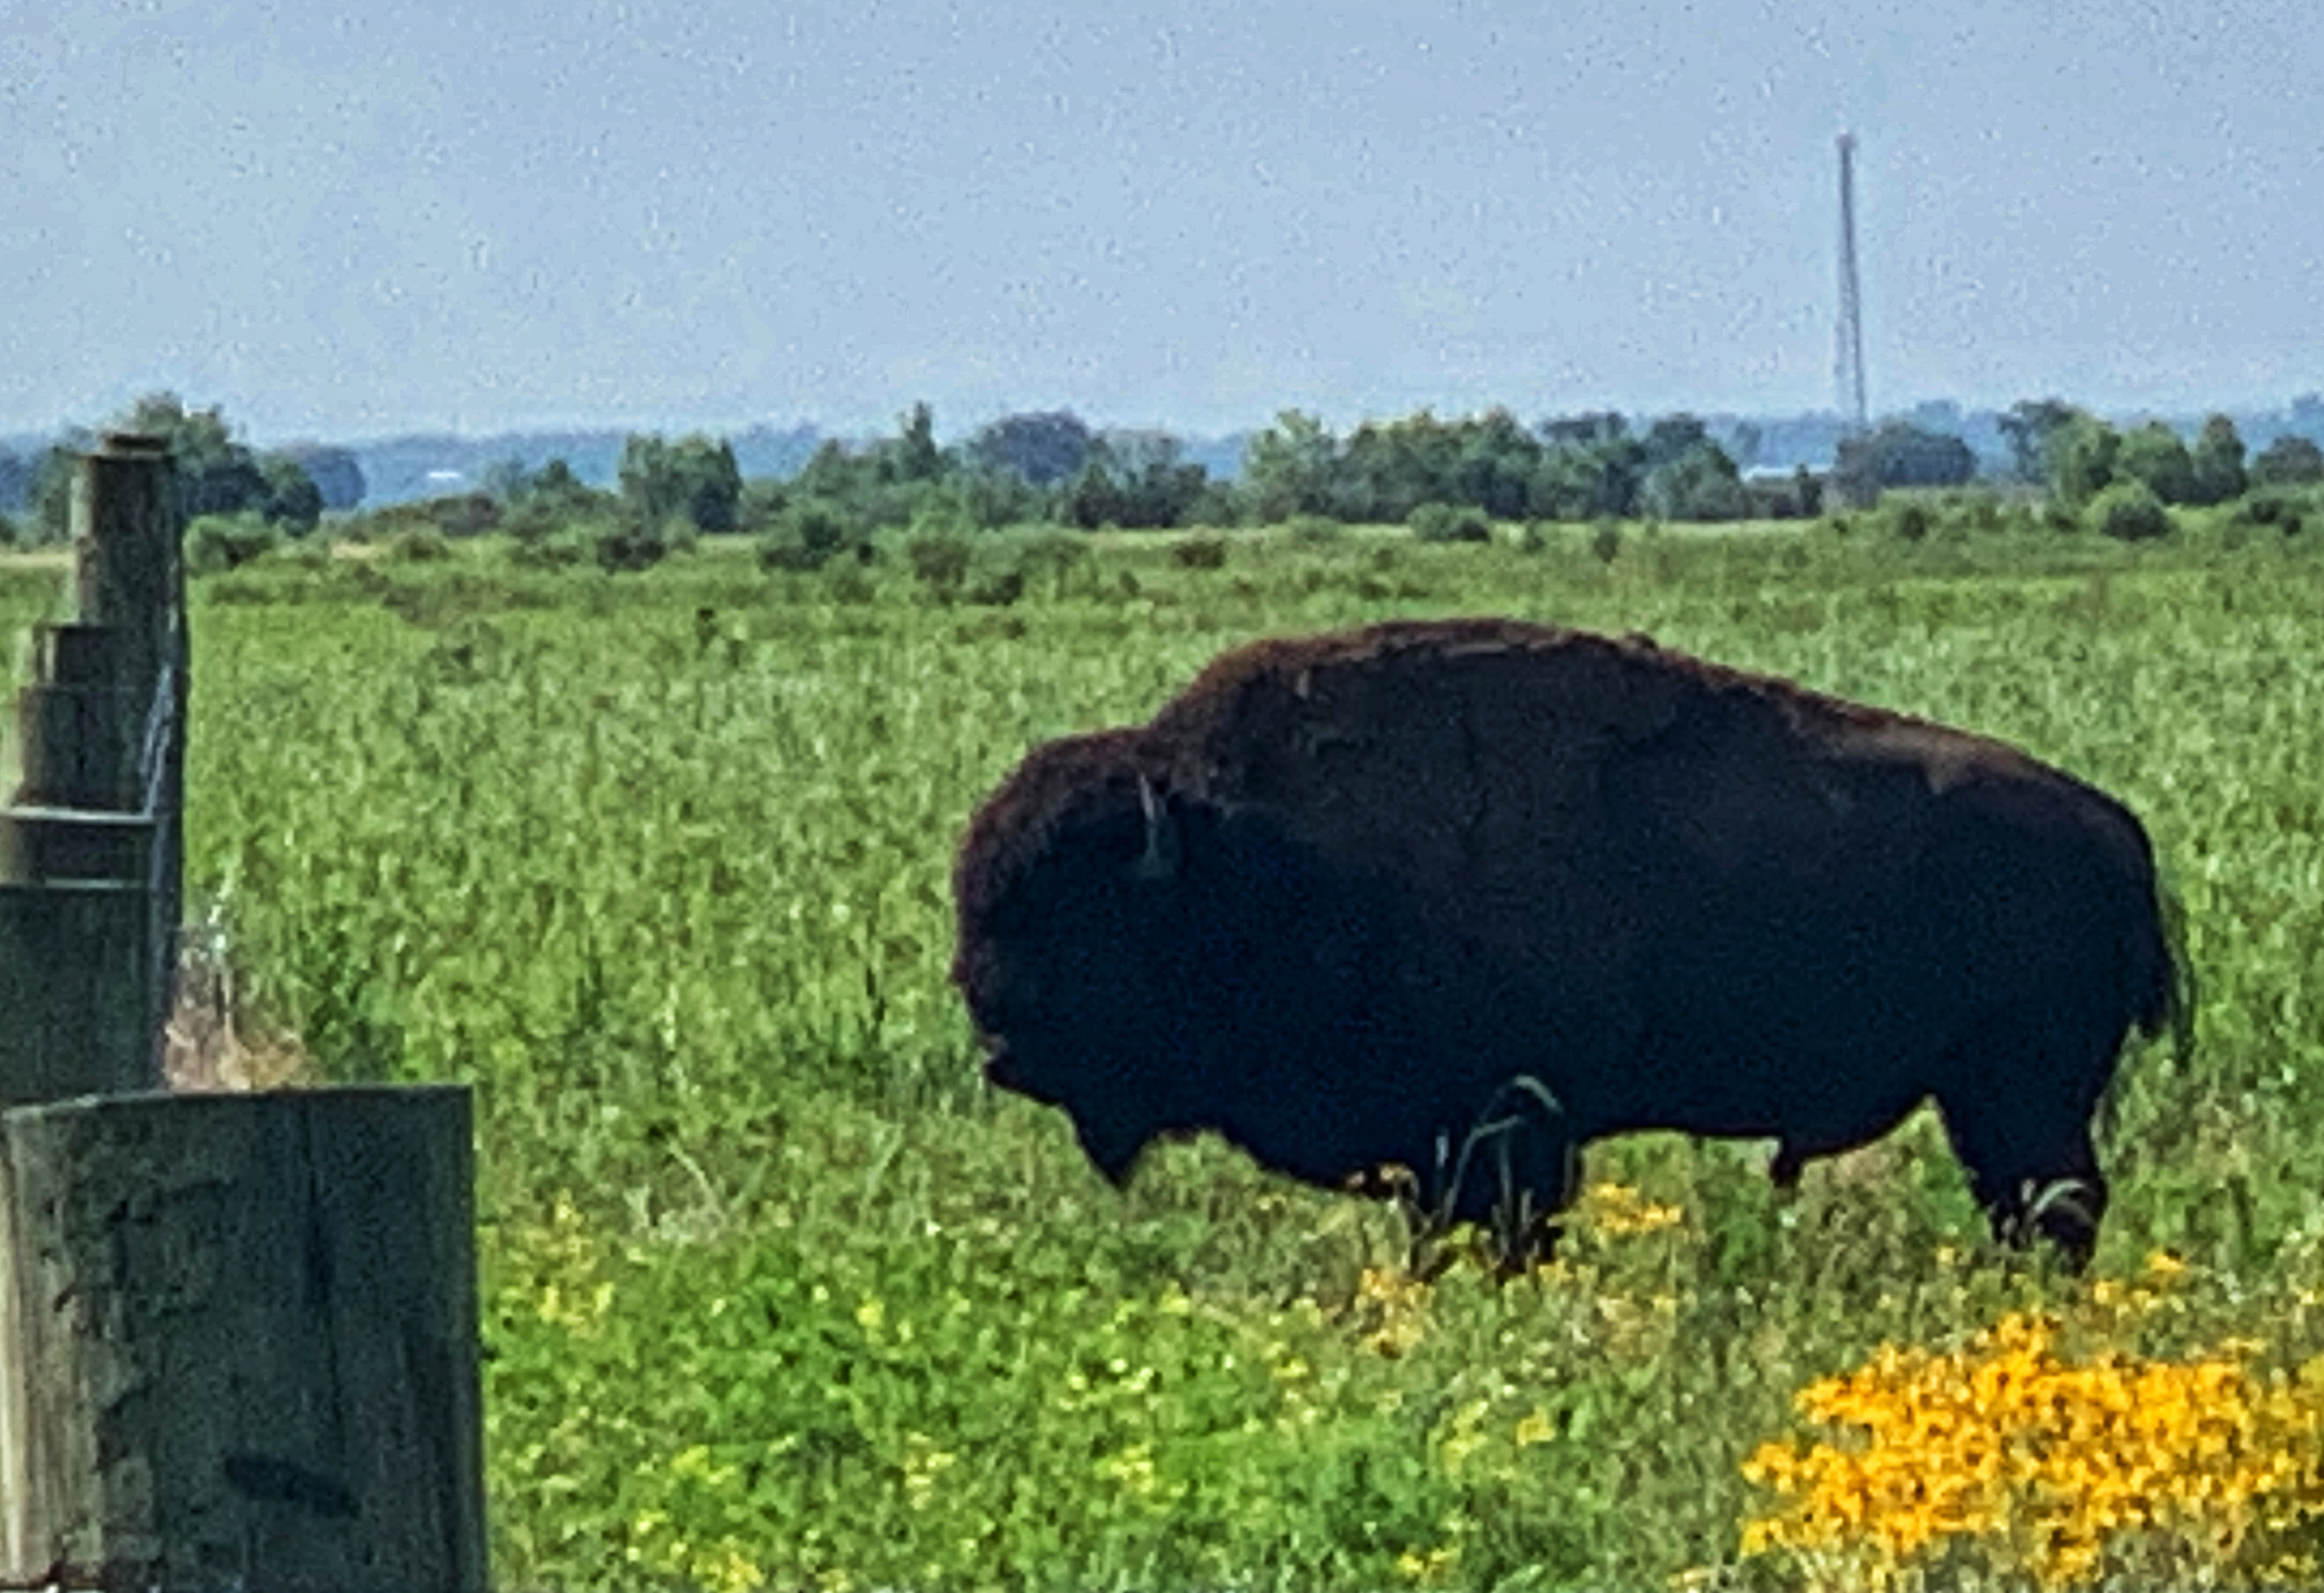 The national mammal of USA in Kankakee Sands Nature Conservancy Indiana